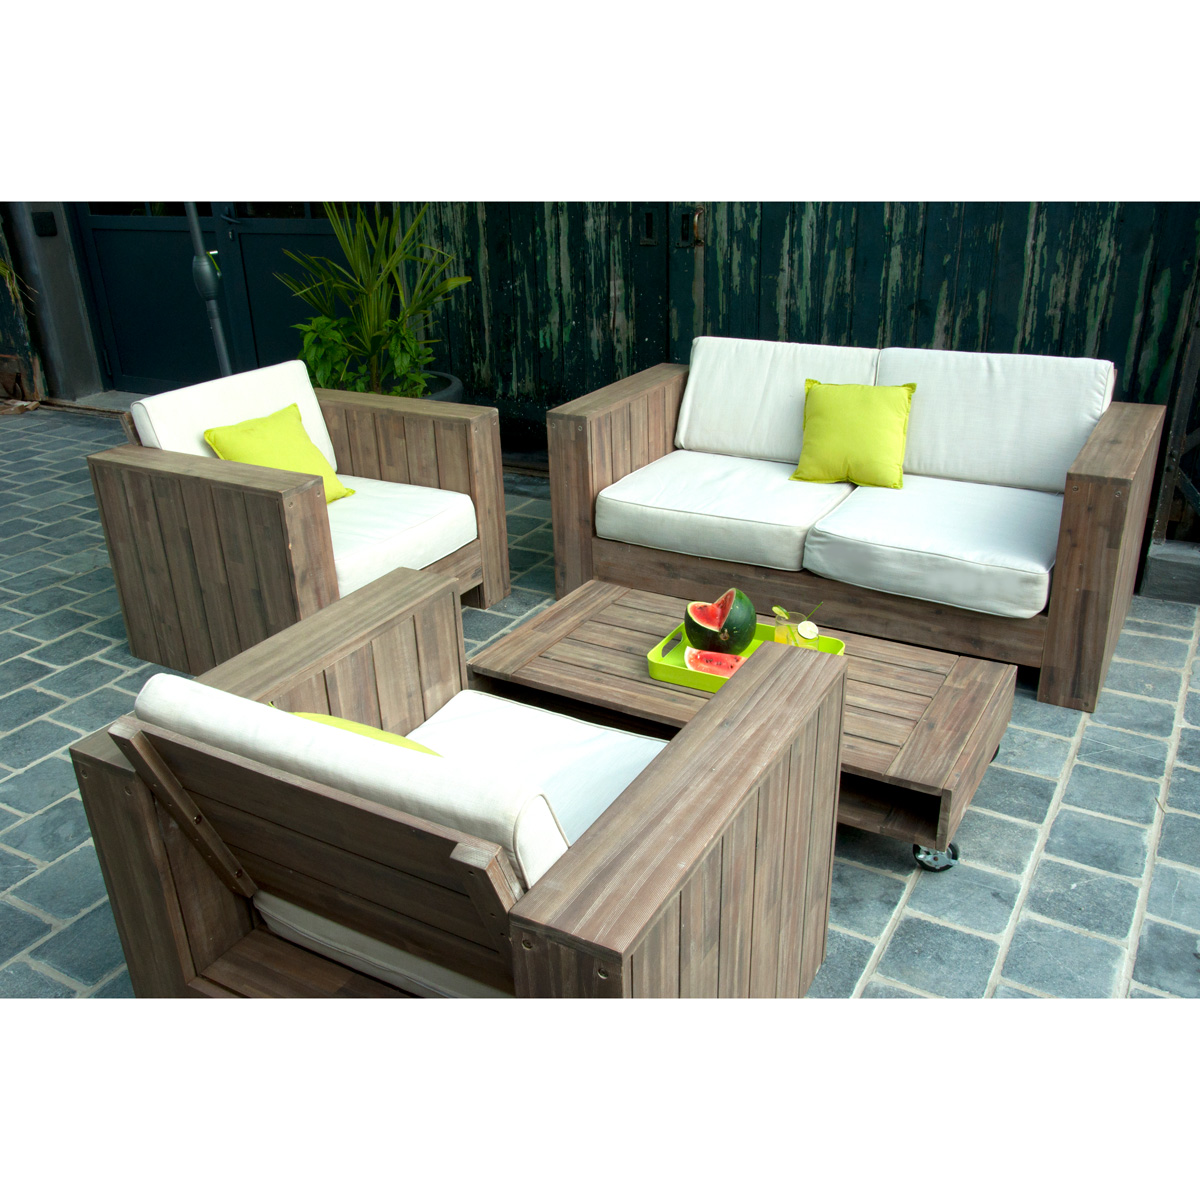 Beautiful salon de jardin bas rond contemporary awesome for Salon de jardin rond pas cher